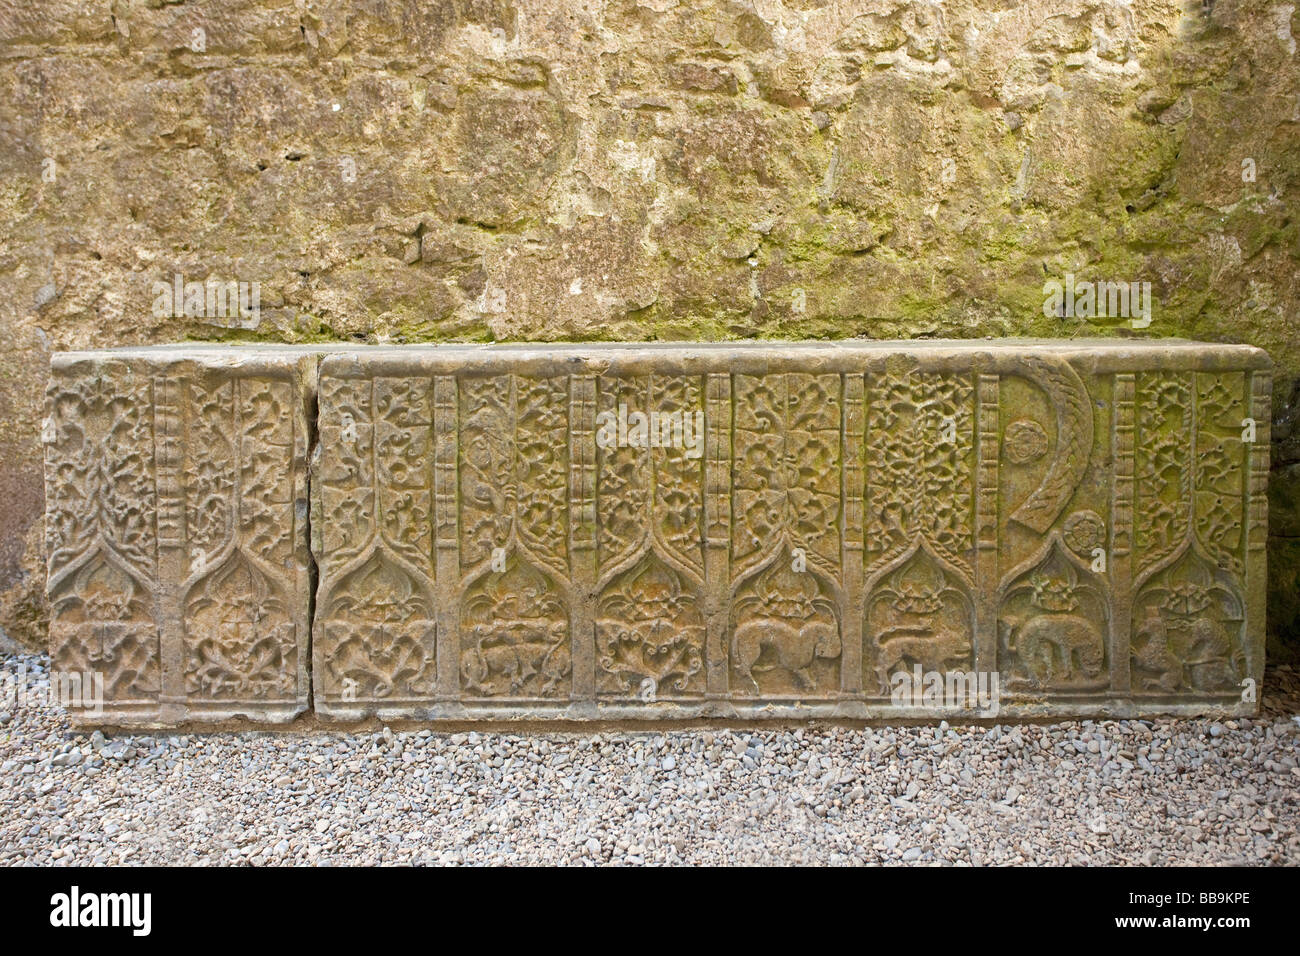 Stone carving from tomb in North transept of Cathedral Rock of Cashel County Tipperary Ireland Eire Irish Republic - Stock Image